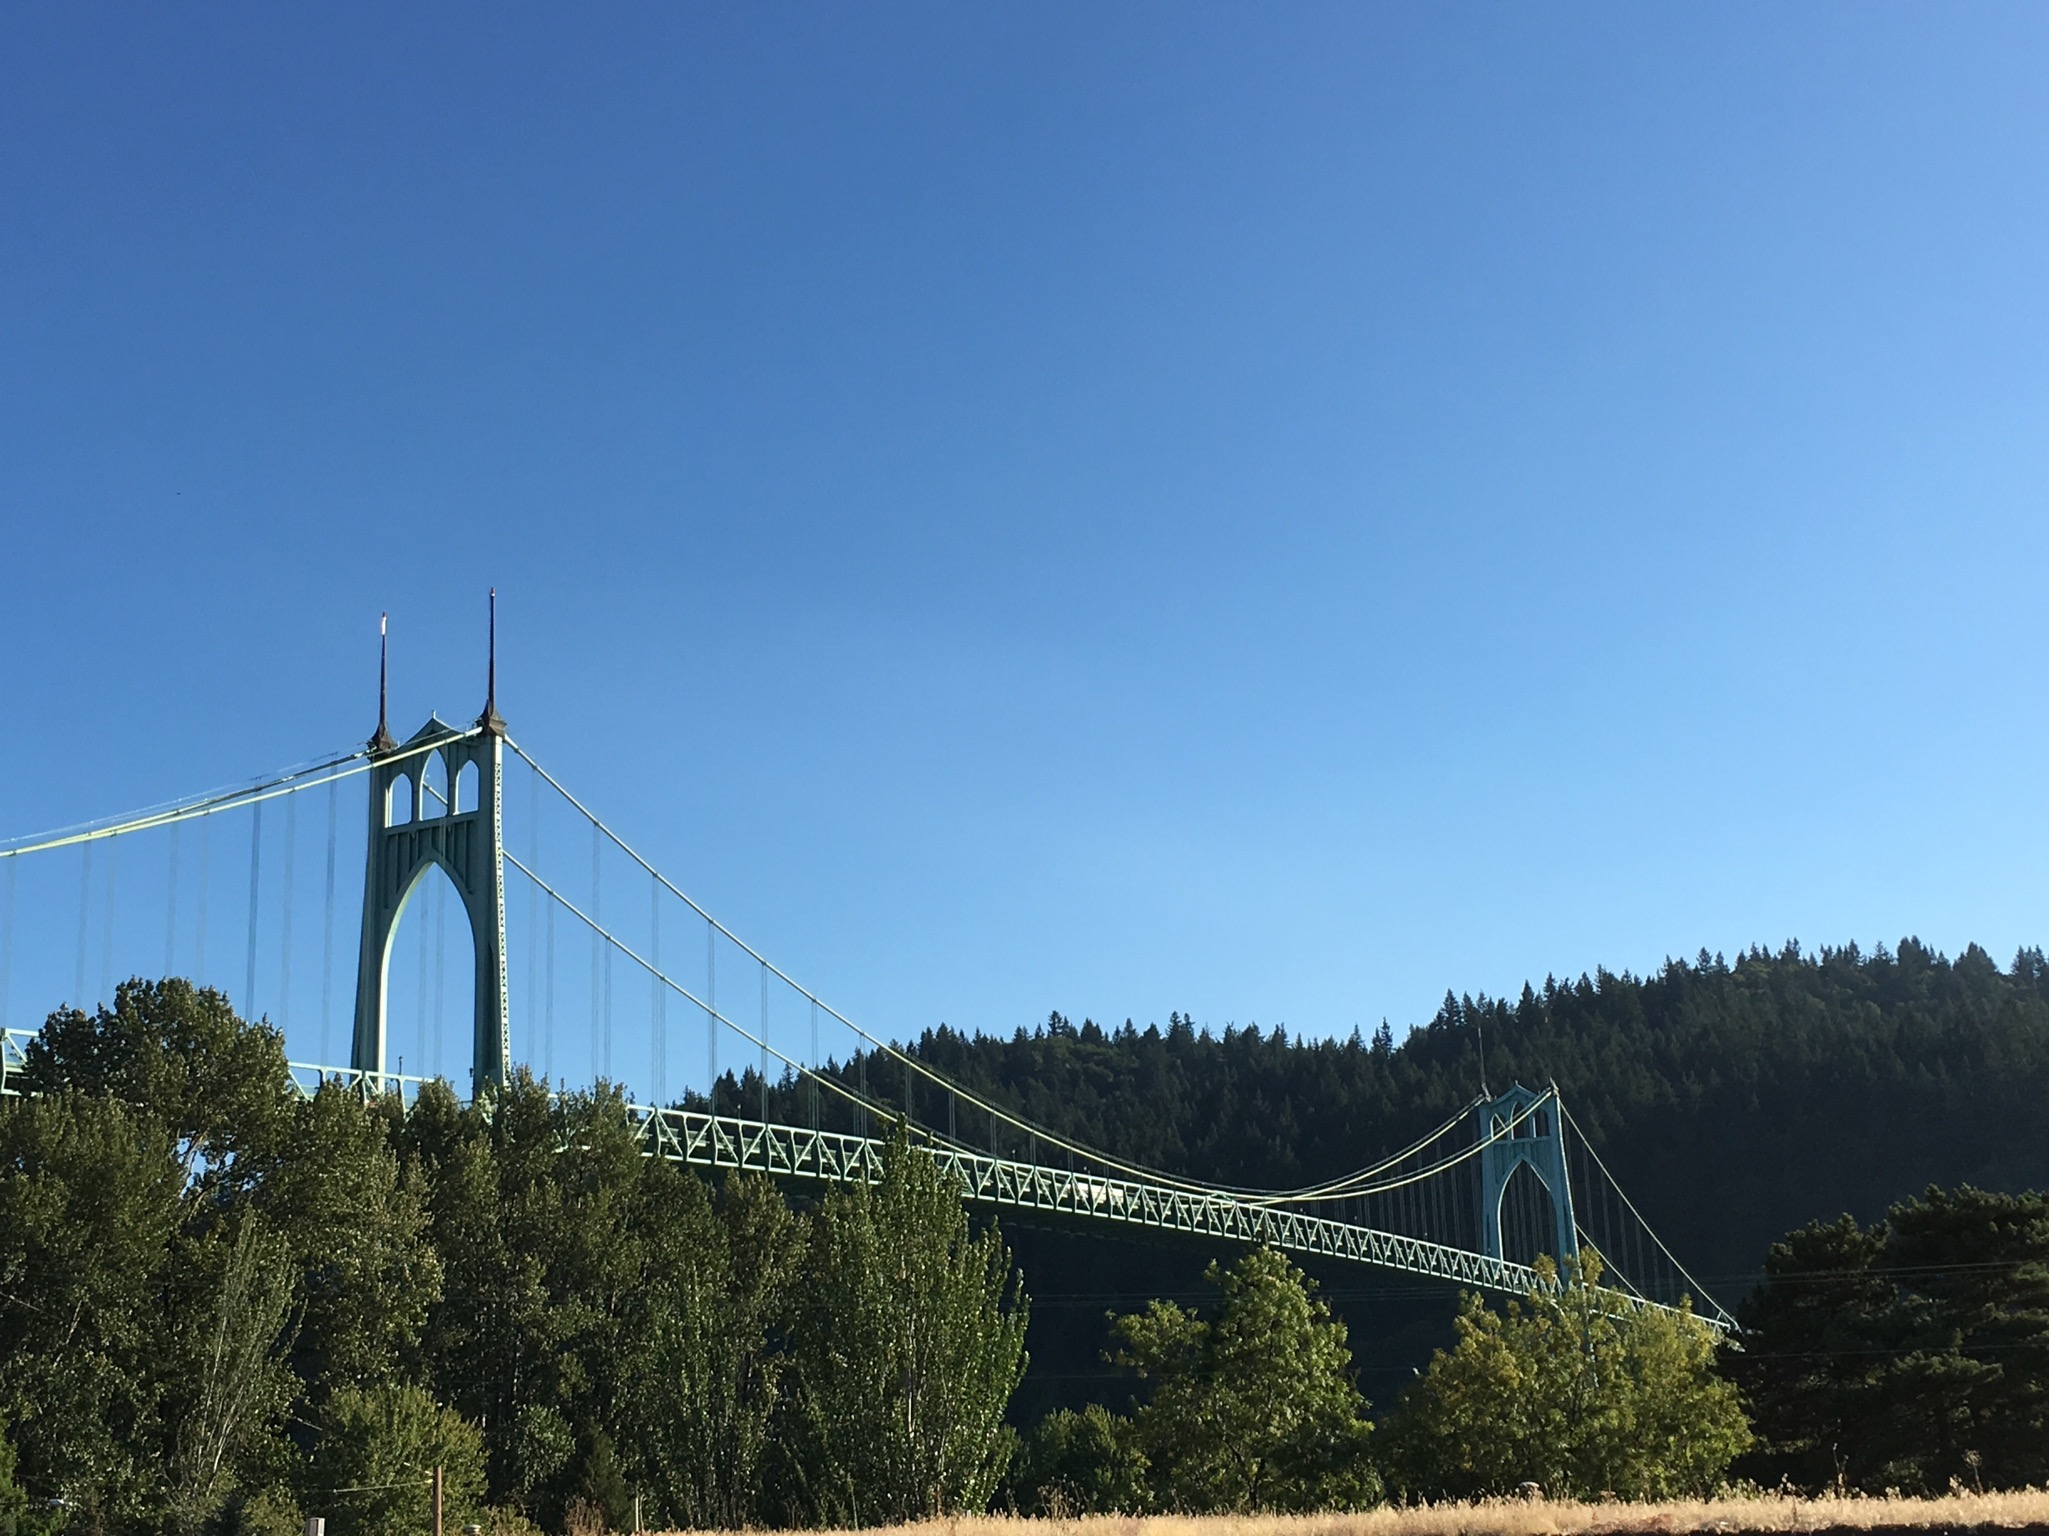 A view of the St Johns Bridge from Occidental Wursthaus. (photo by Cat Stelzer)